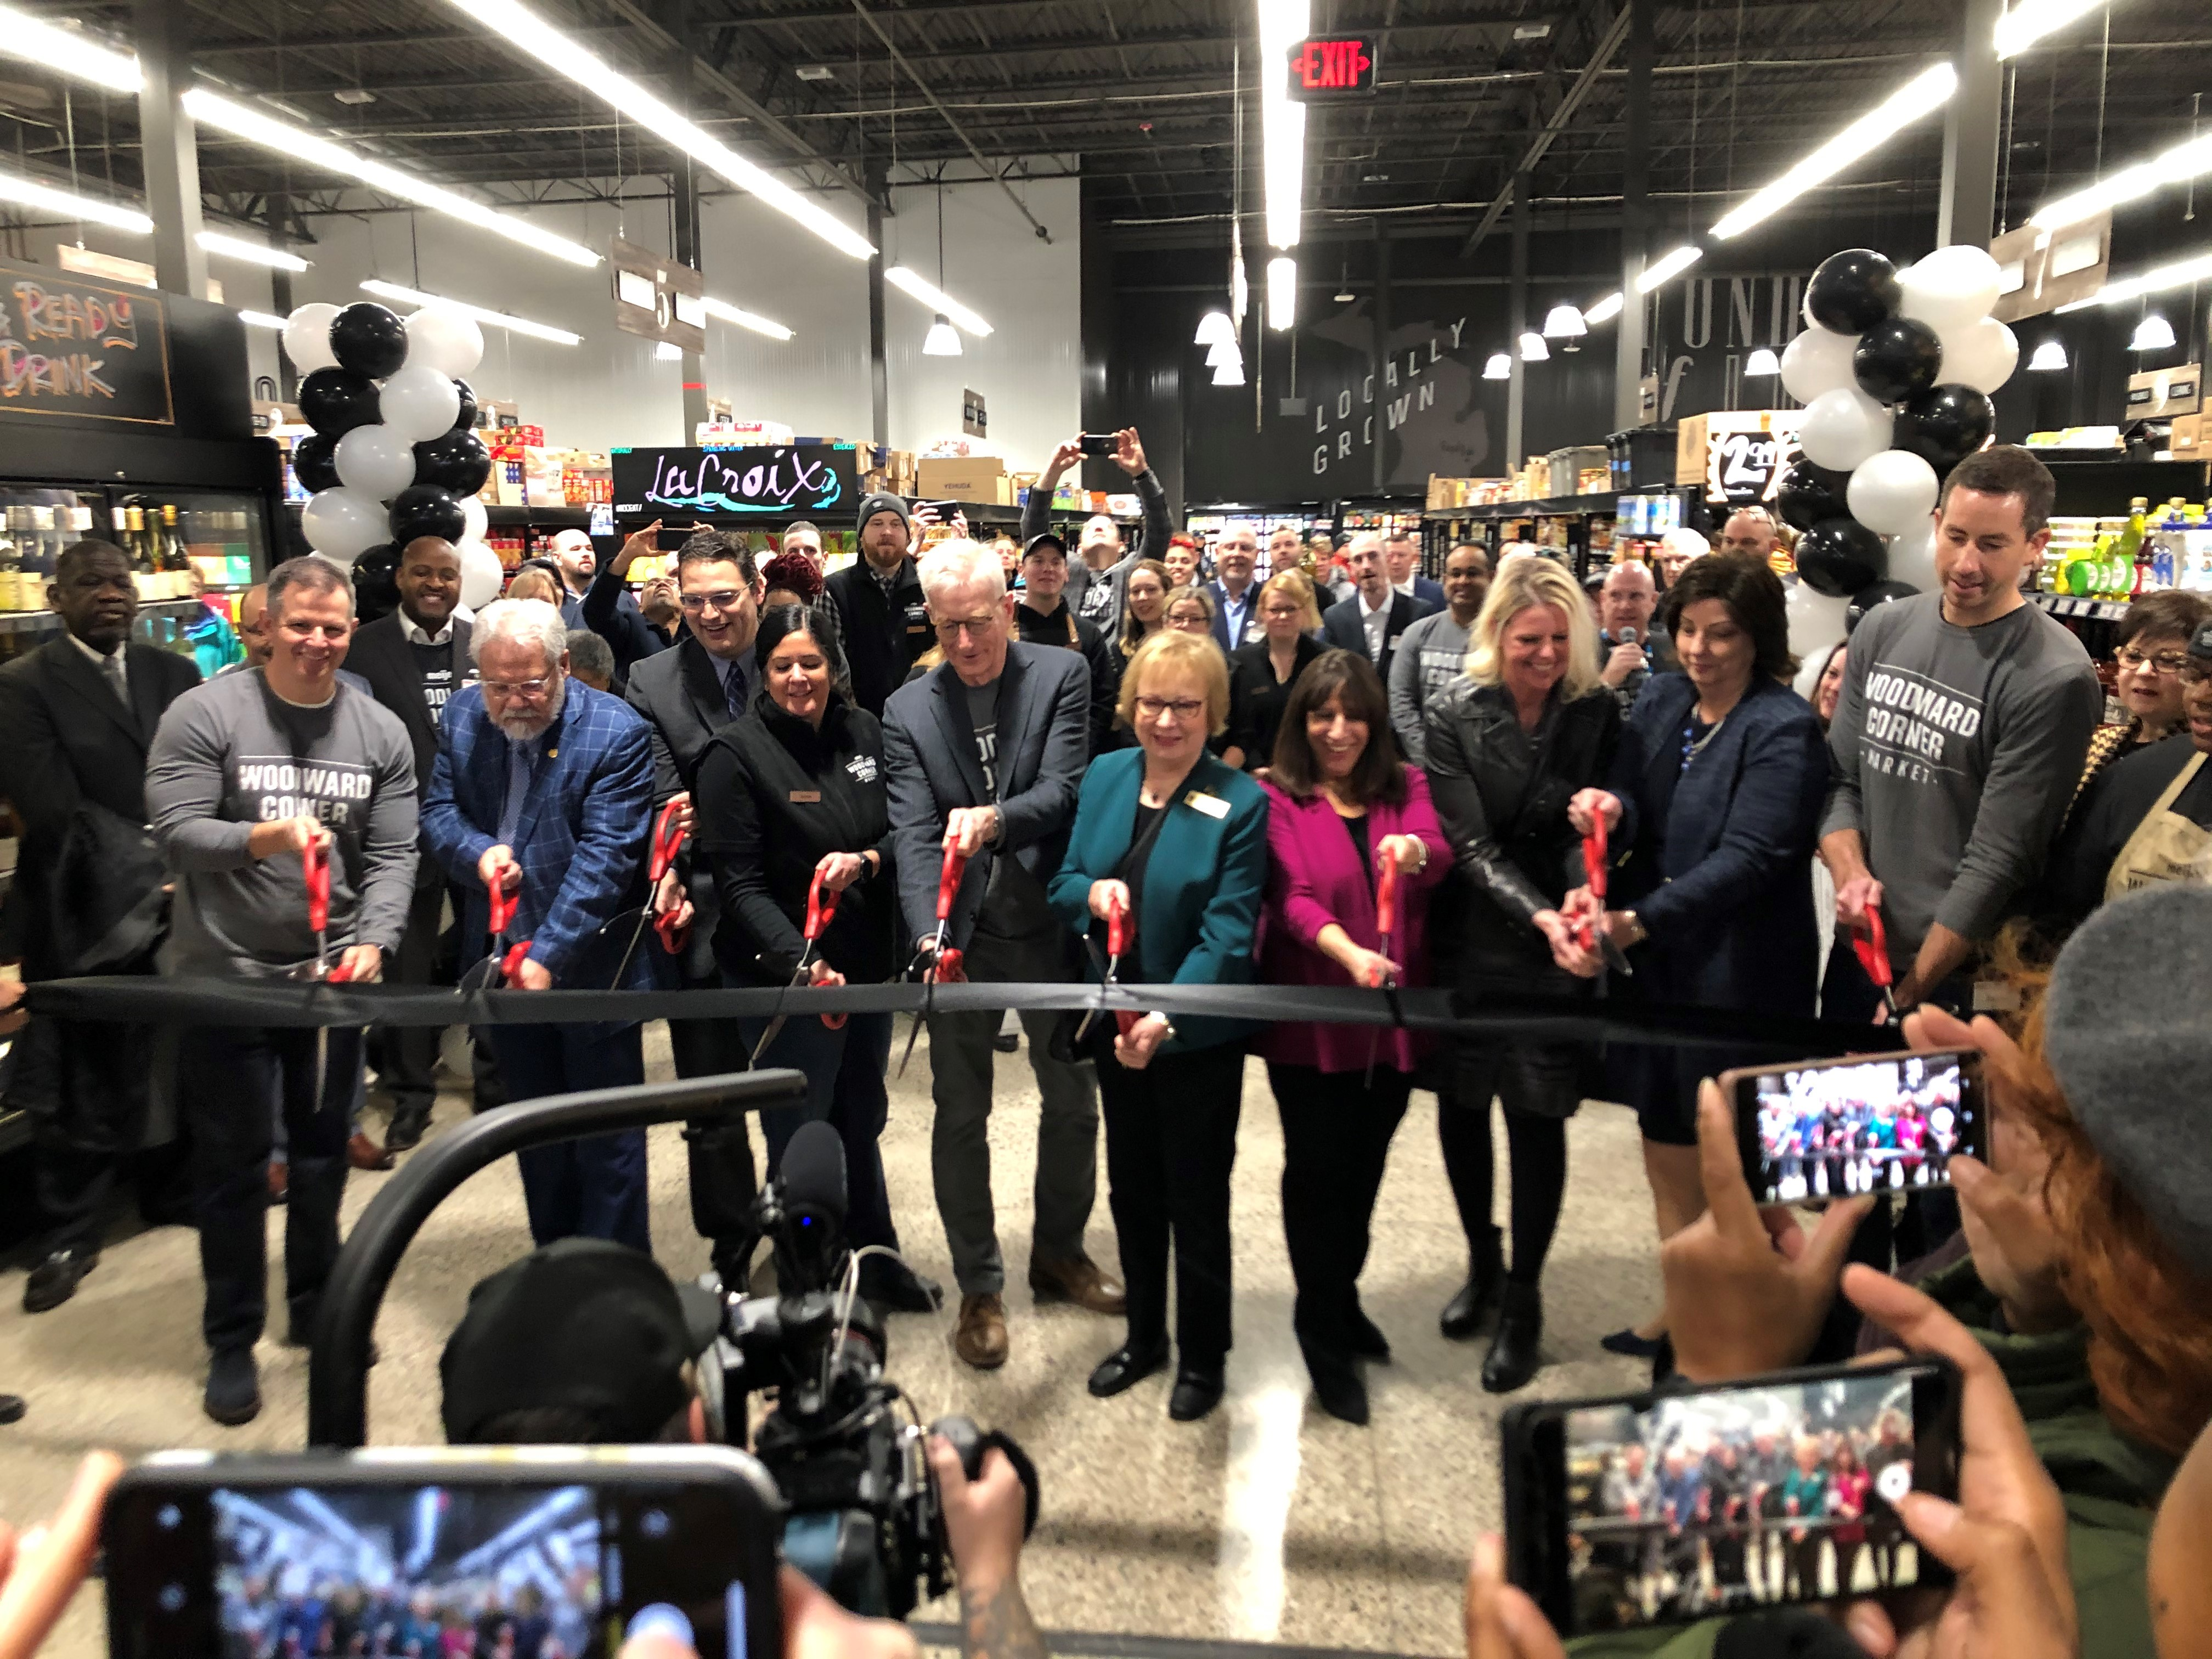 Market ribbon cutting